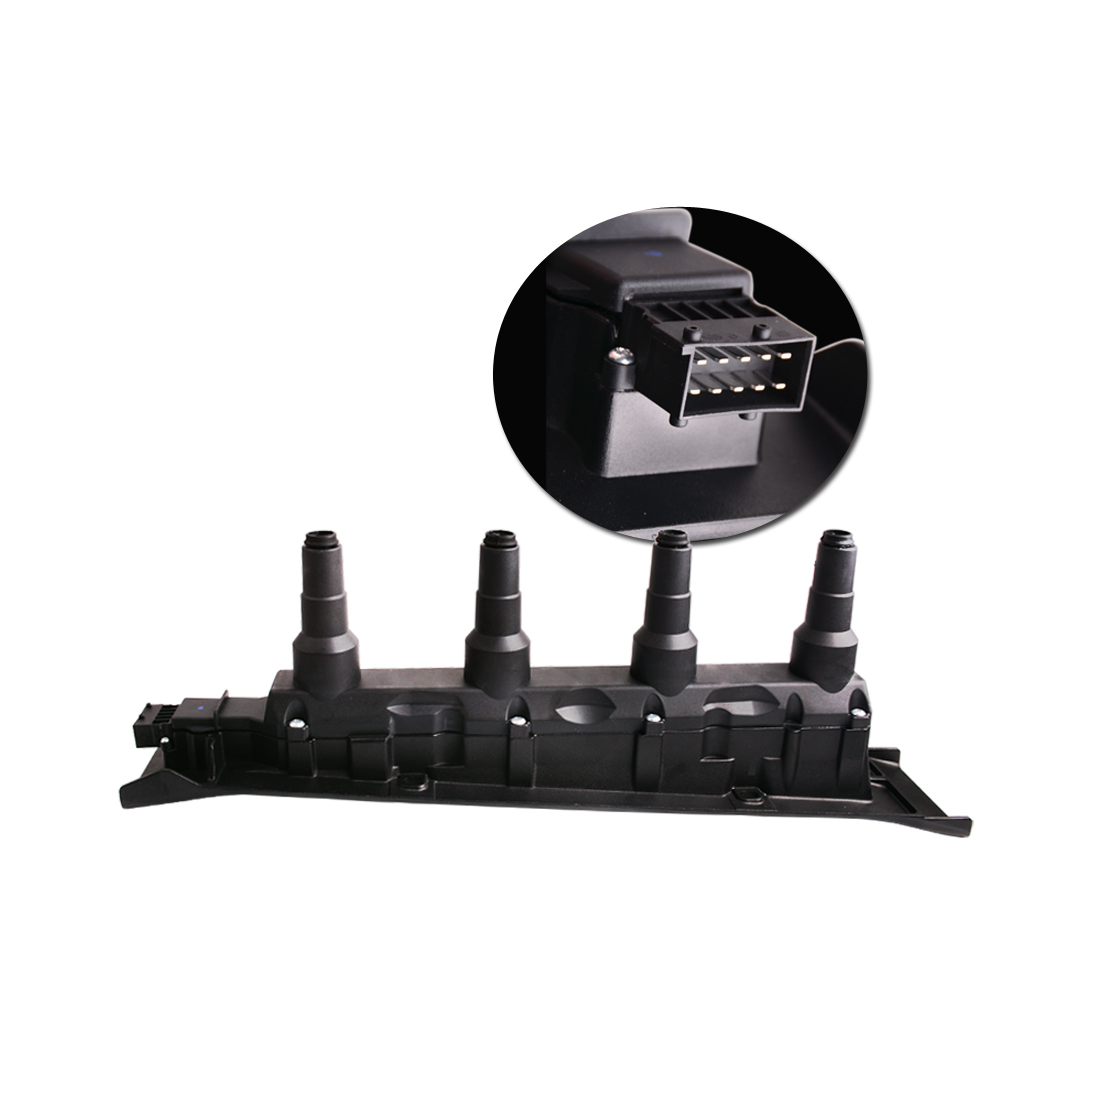 YITAMOTOR Direct Ignition Coil Cassette Pack Black NEW for Saab 9-3 9-5 Turbo 4 Cyl UF577